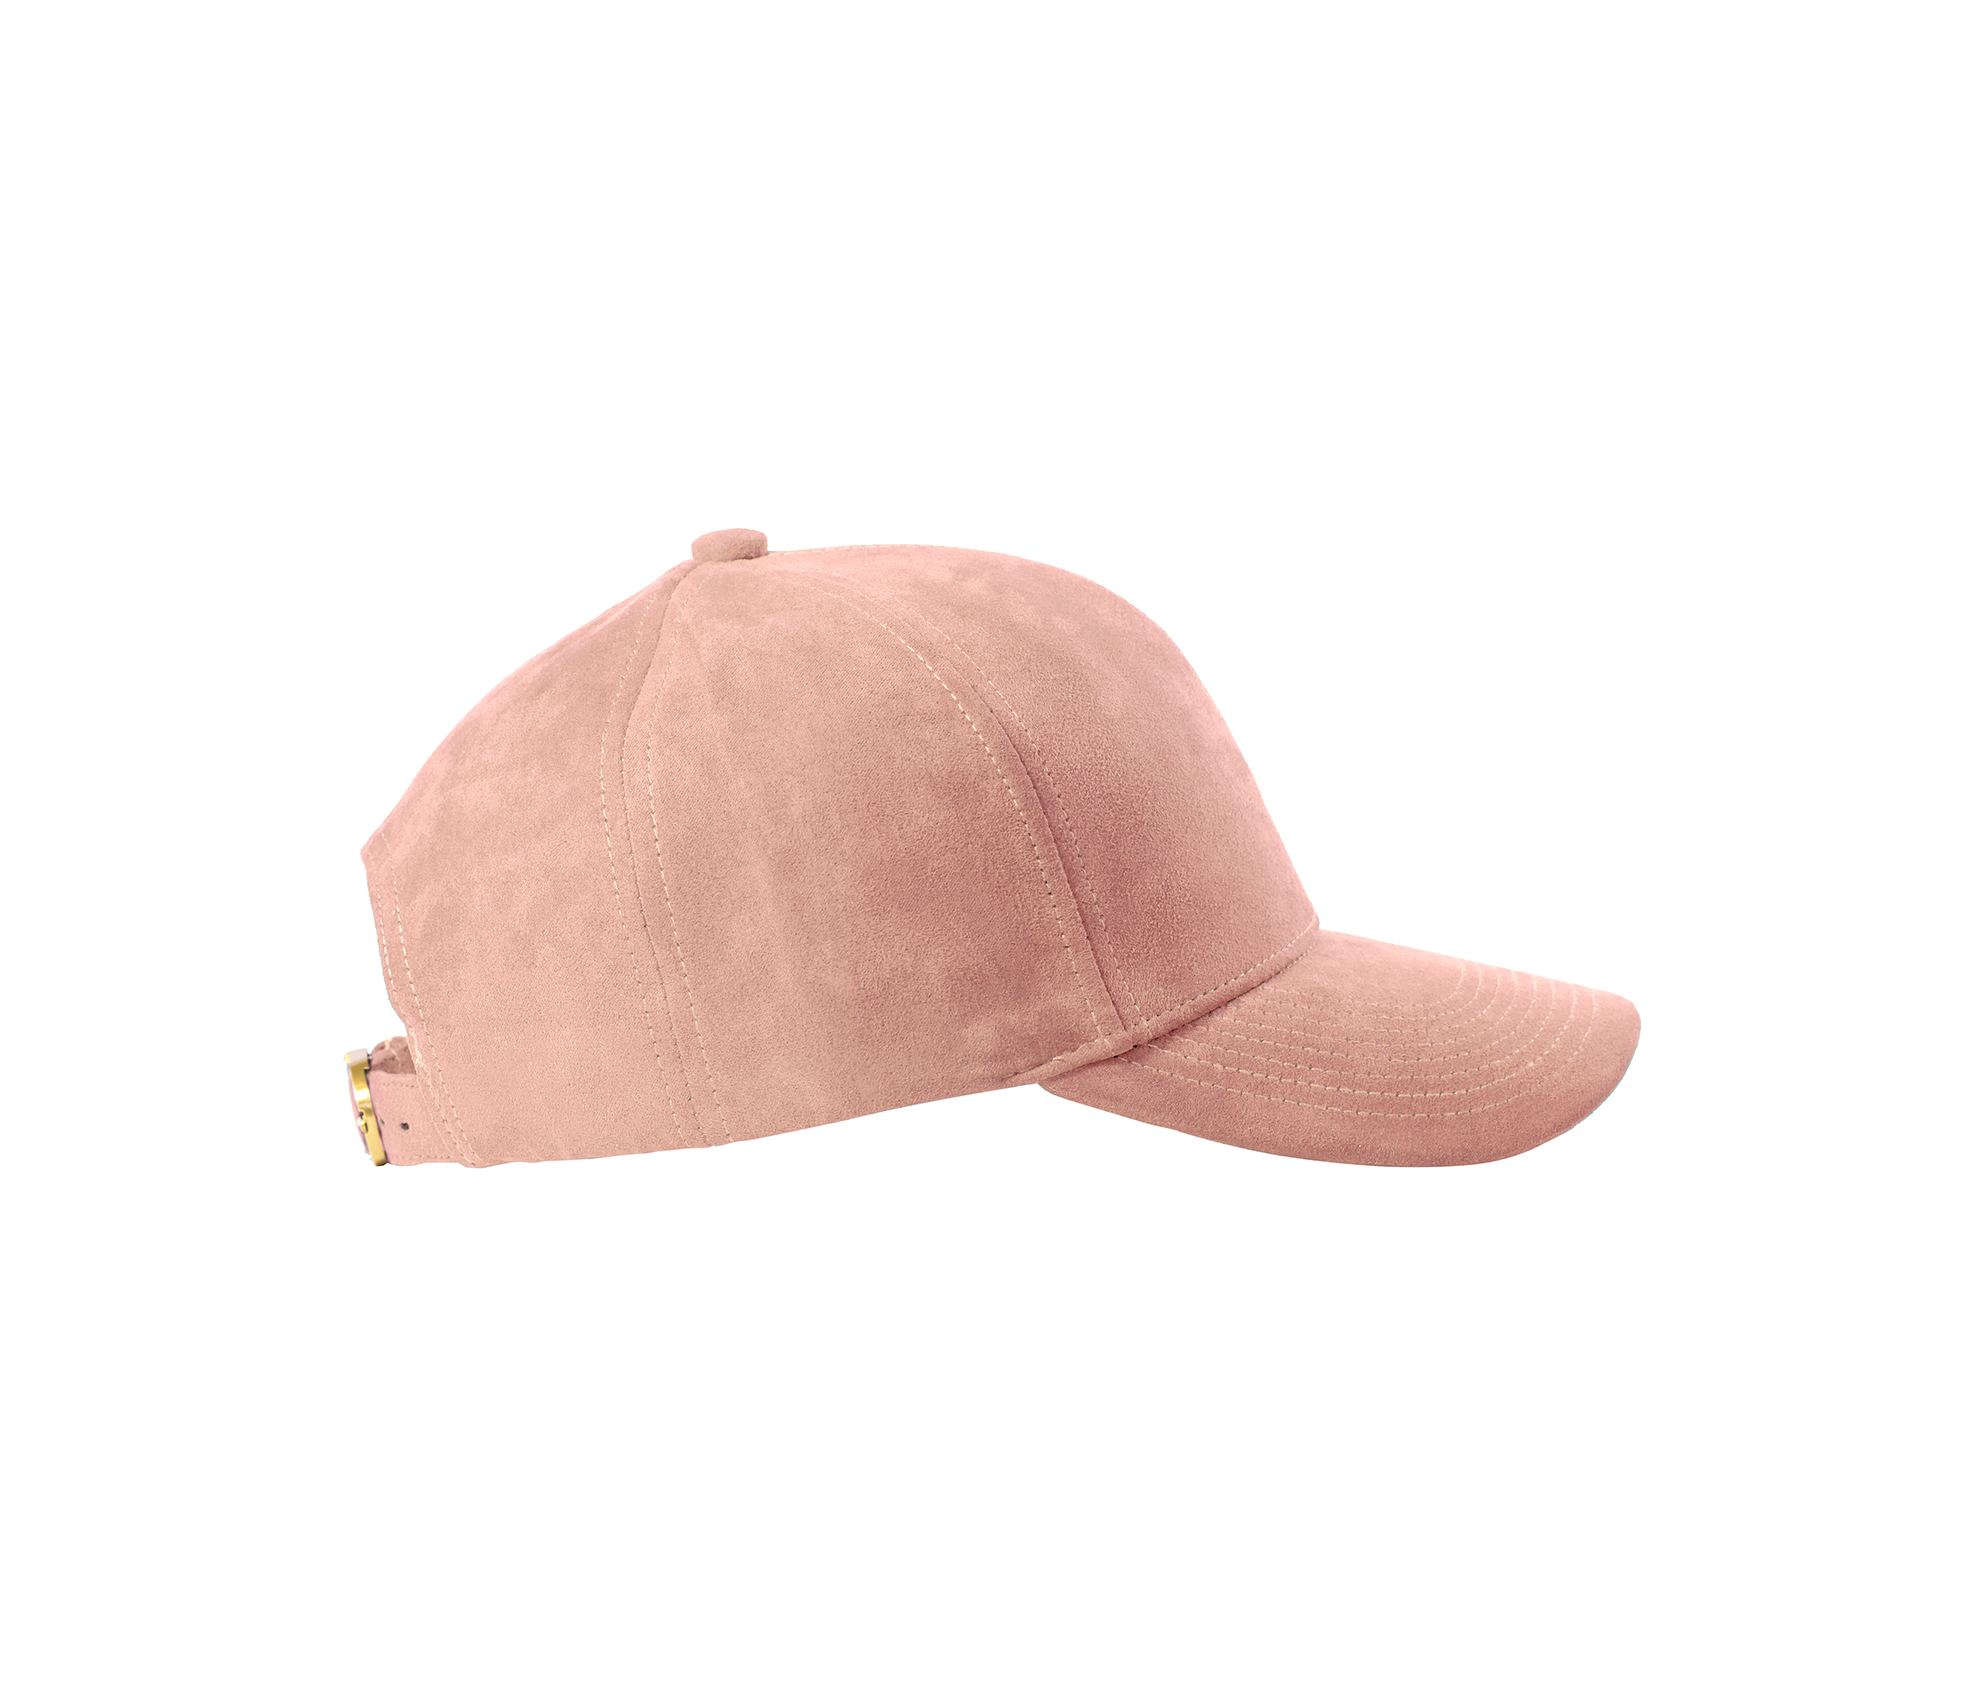 BASEBALL CAP CLOUD ROSE SUEDE GOLD SIDE